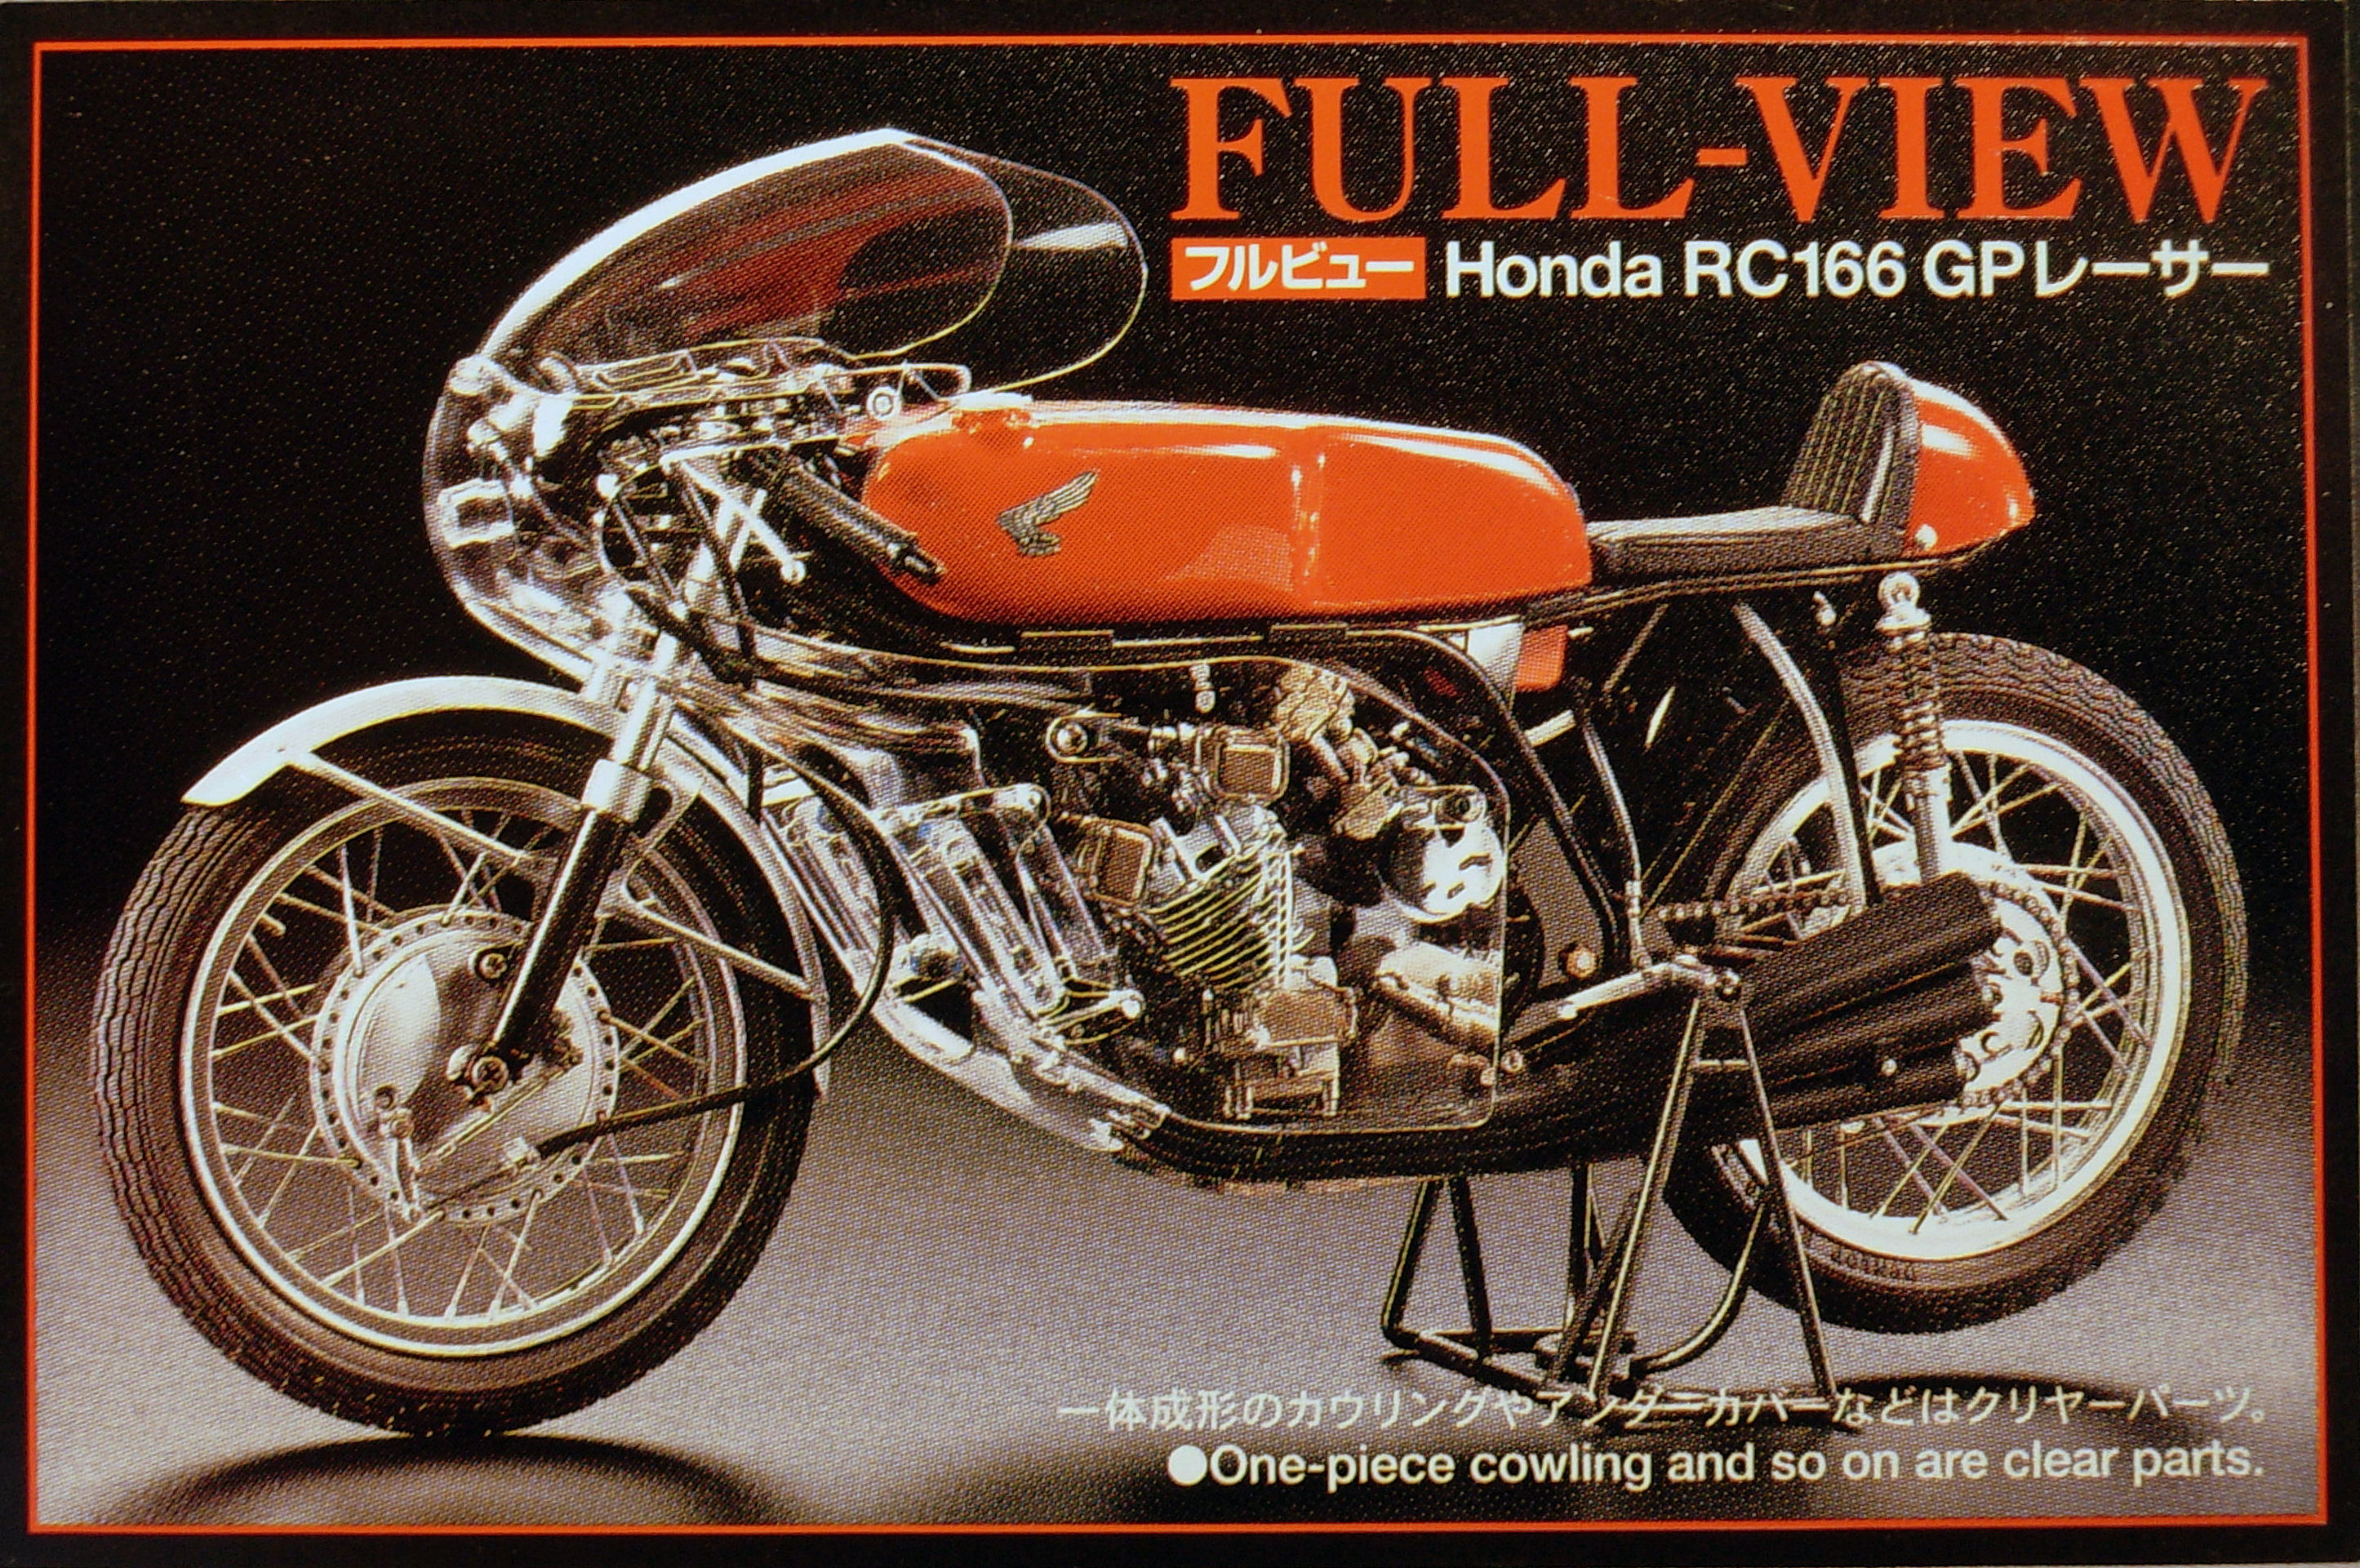 Full view Honda RC166